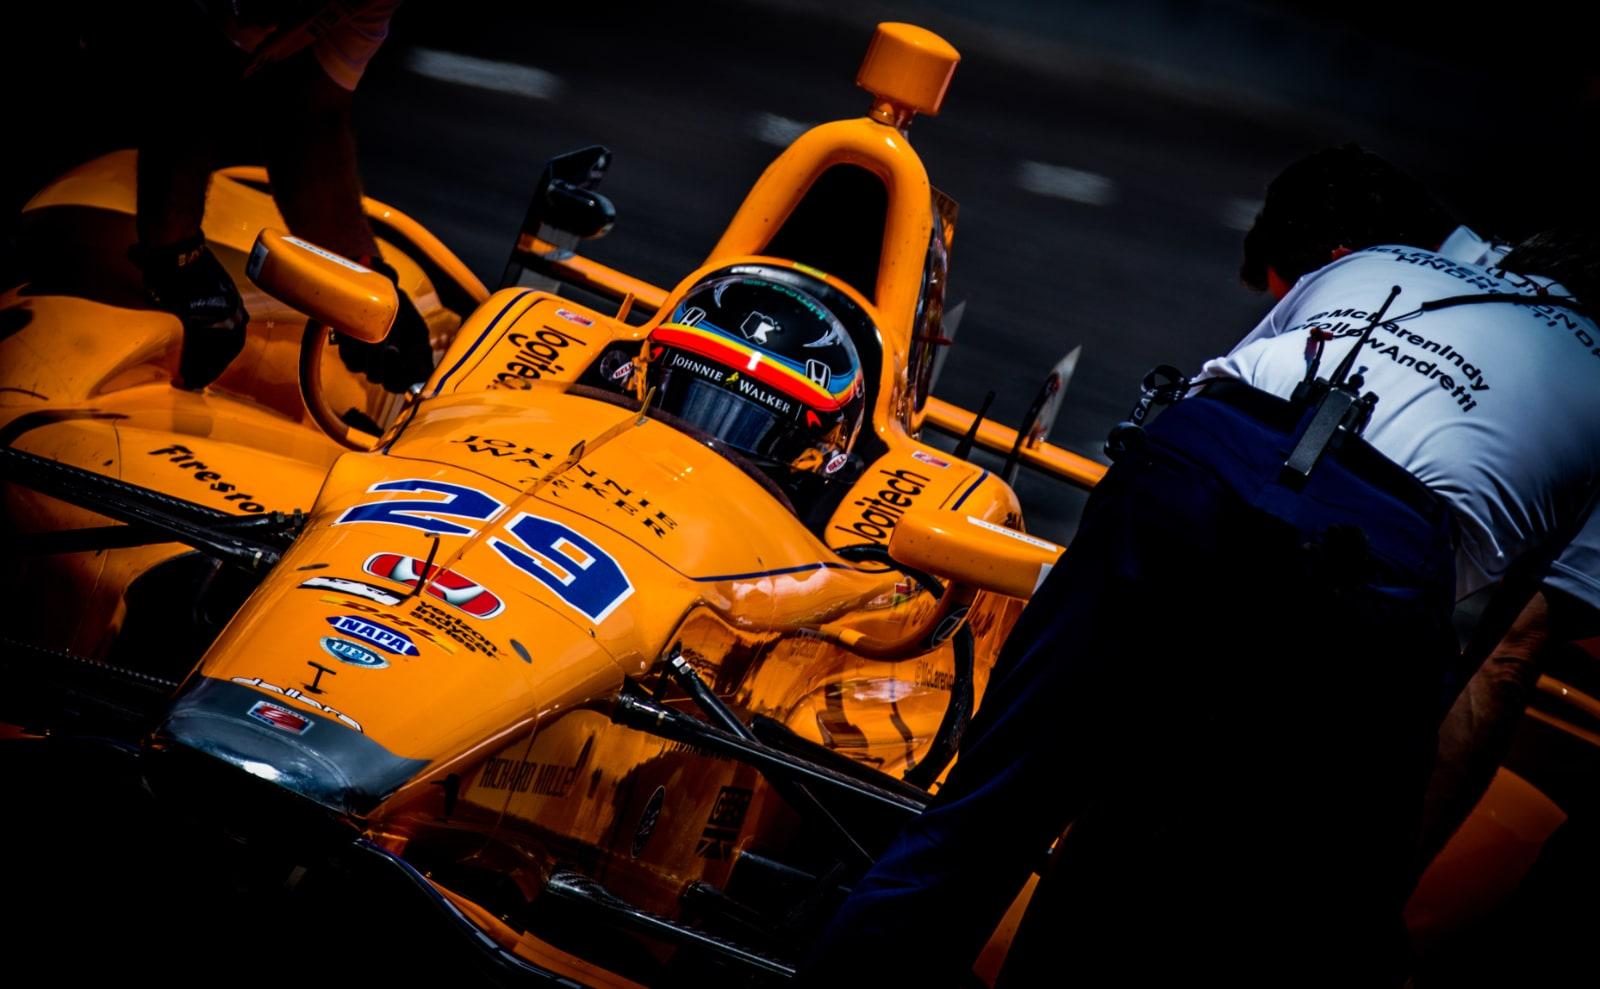 Fernando Alonso exits Indy 500 pit lane in McLaren